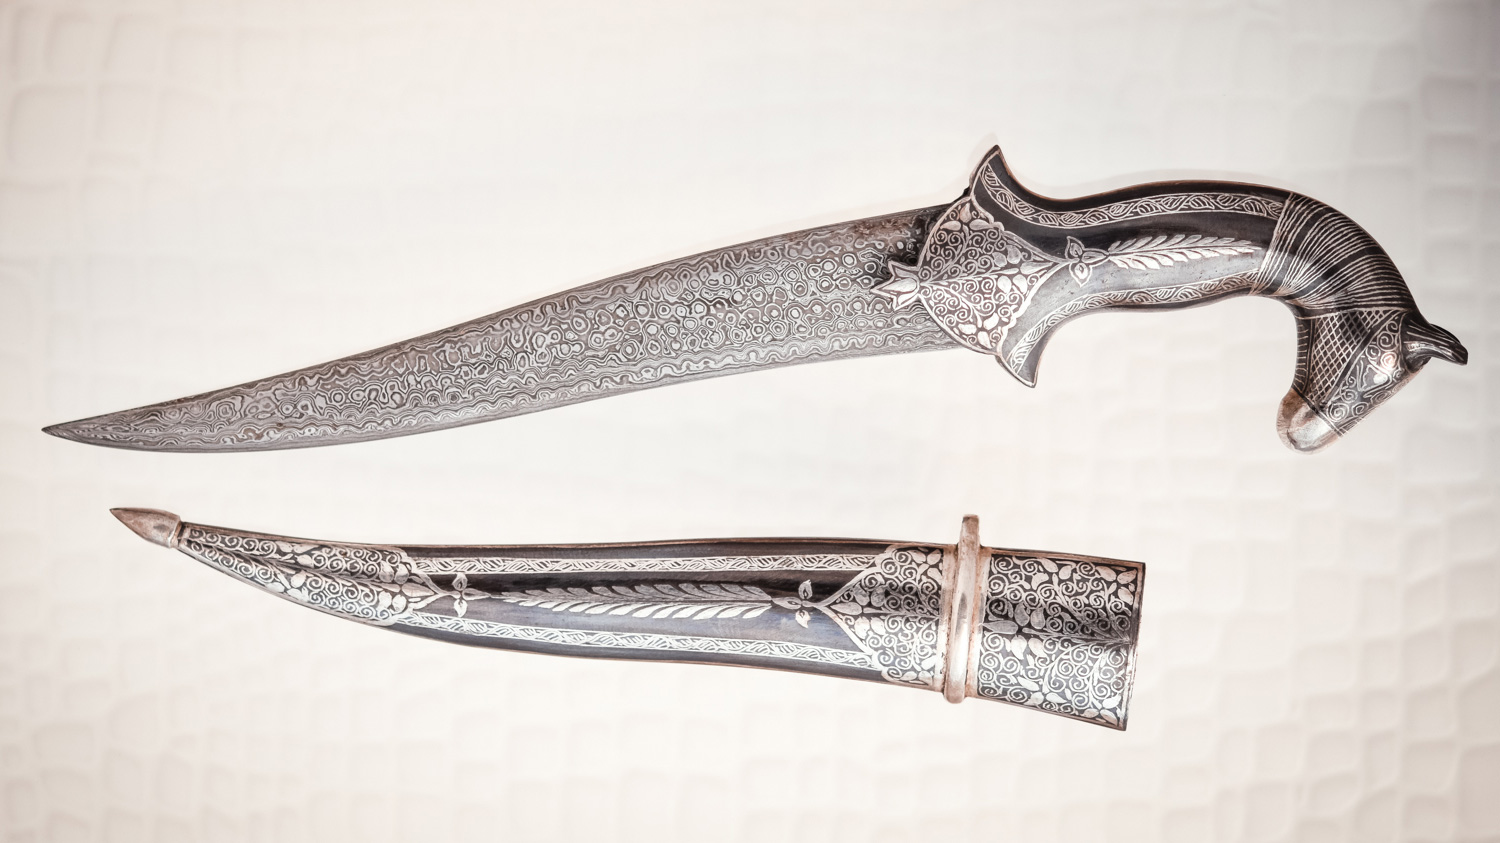 Persian Style Damascus Steel Dagger from Steve's Collection